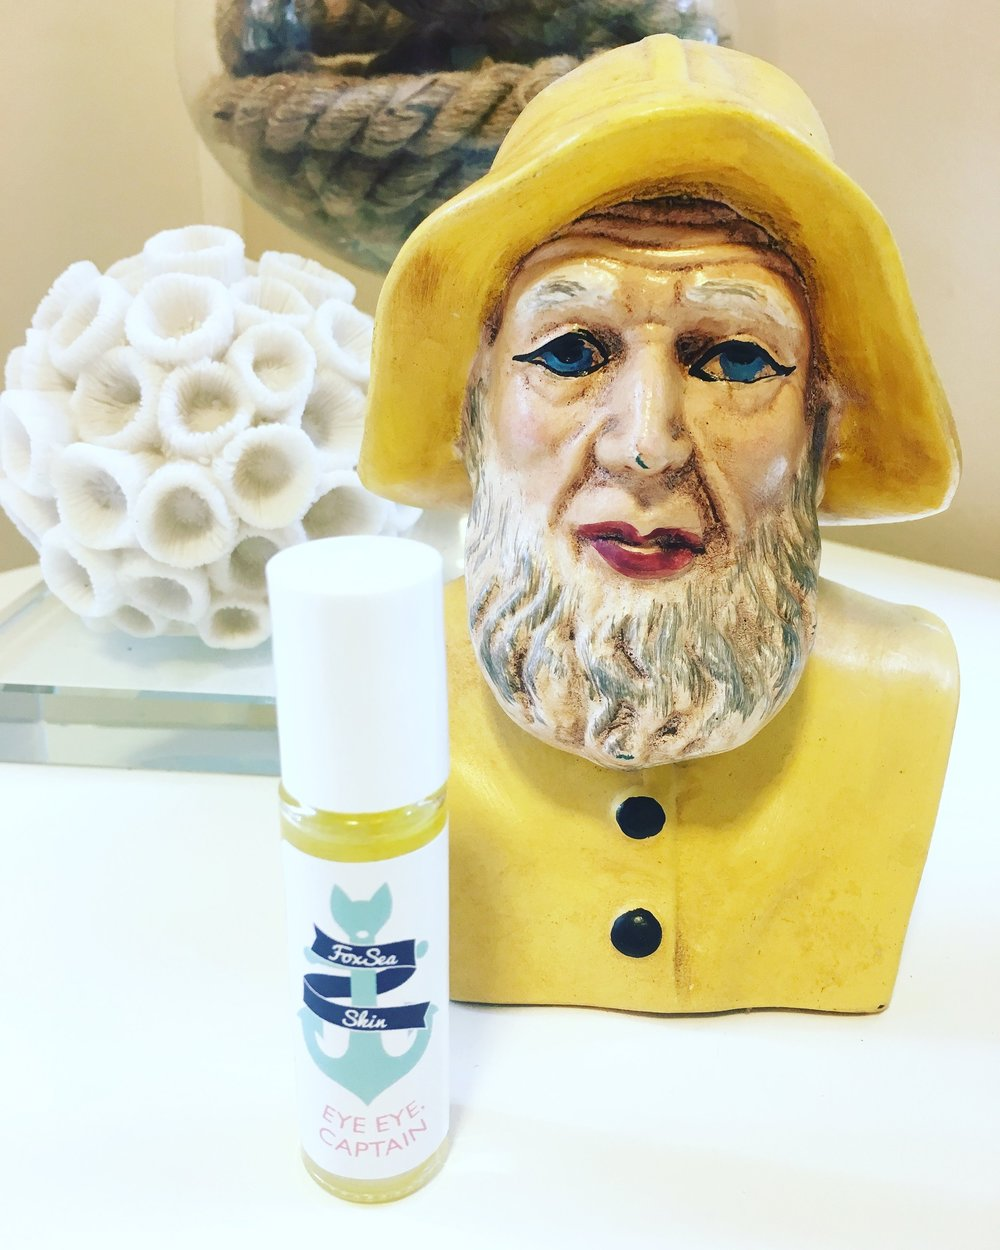 New FoxSea Launch - I'm so excited about Eye Eye, Captain, an under eye oil serum that helps keep fine lines and wrinkles at bay! I hope everyone loves it as much as EYE do. #badumching